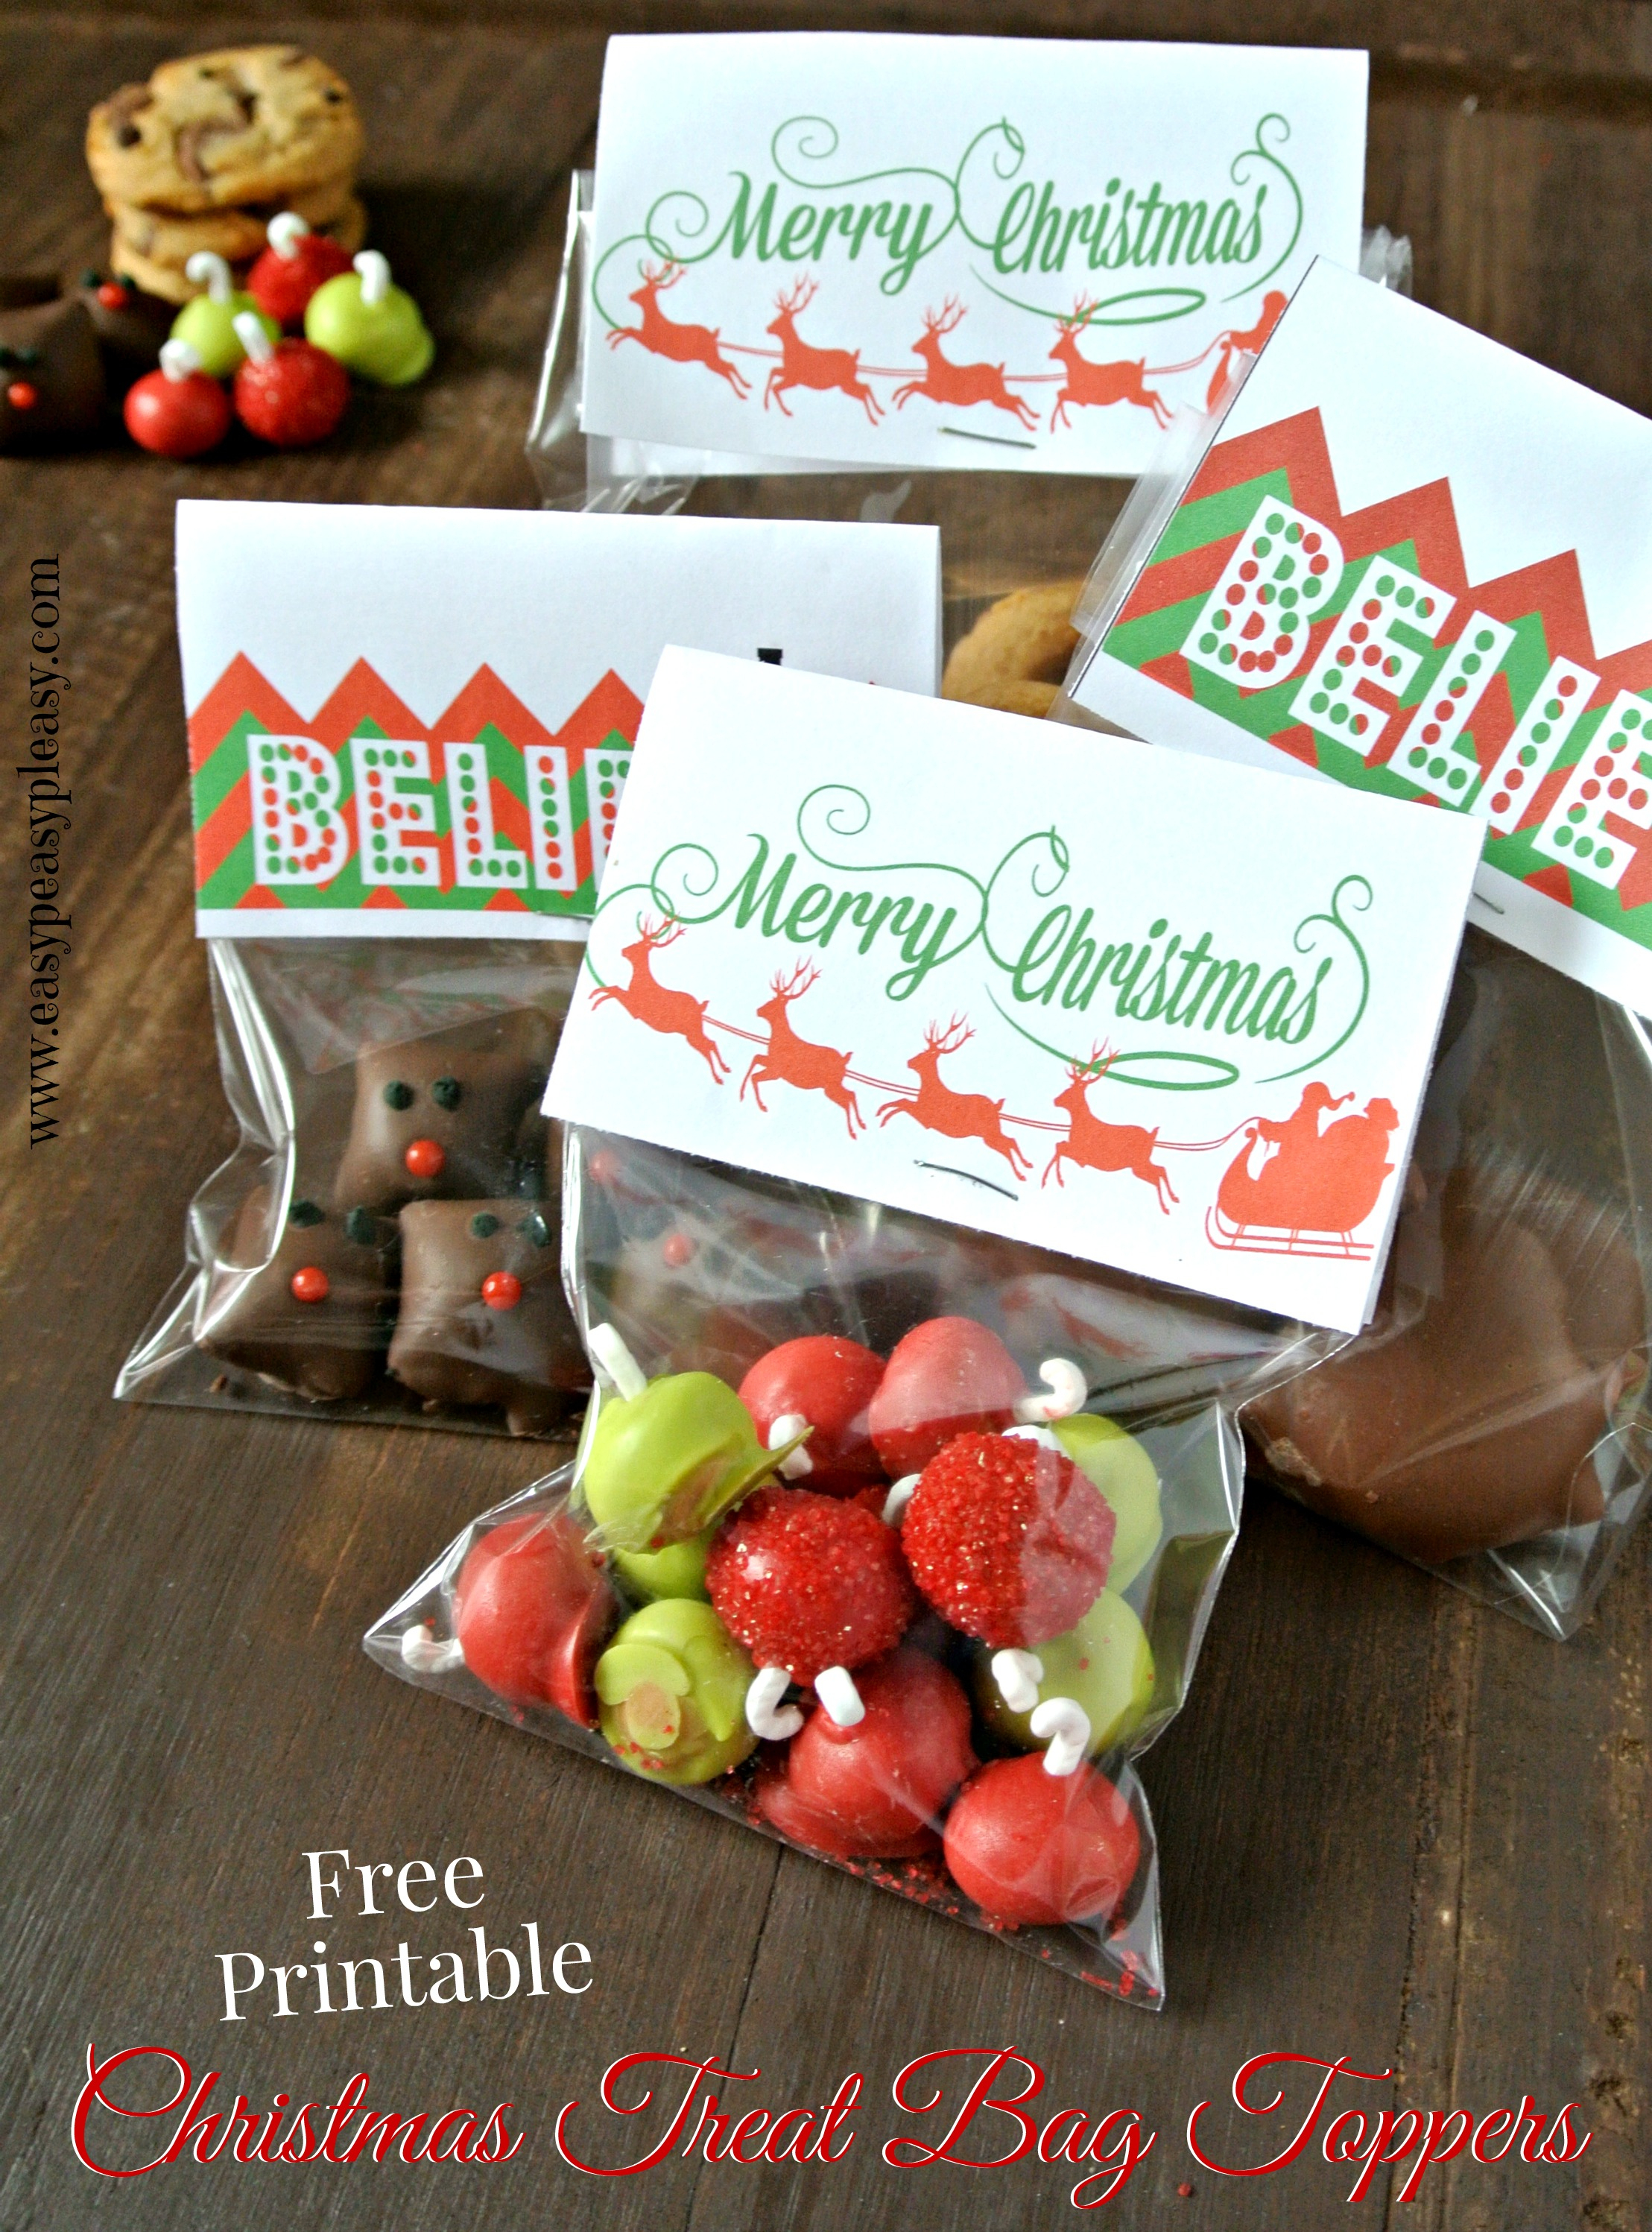 3 Free Printable Christmas Treat Bag Toppers - Easy Peasy Pleasy - Free Printable Thanksgiving Treat Bag Toppers